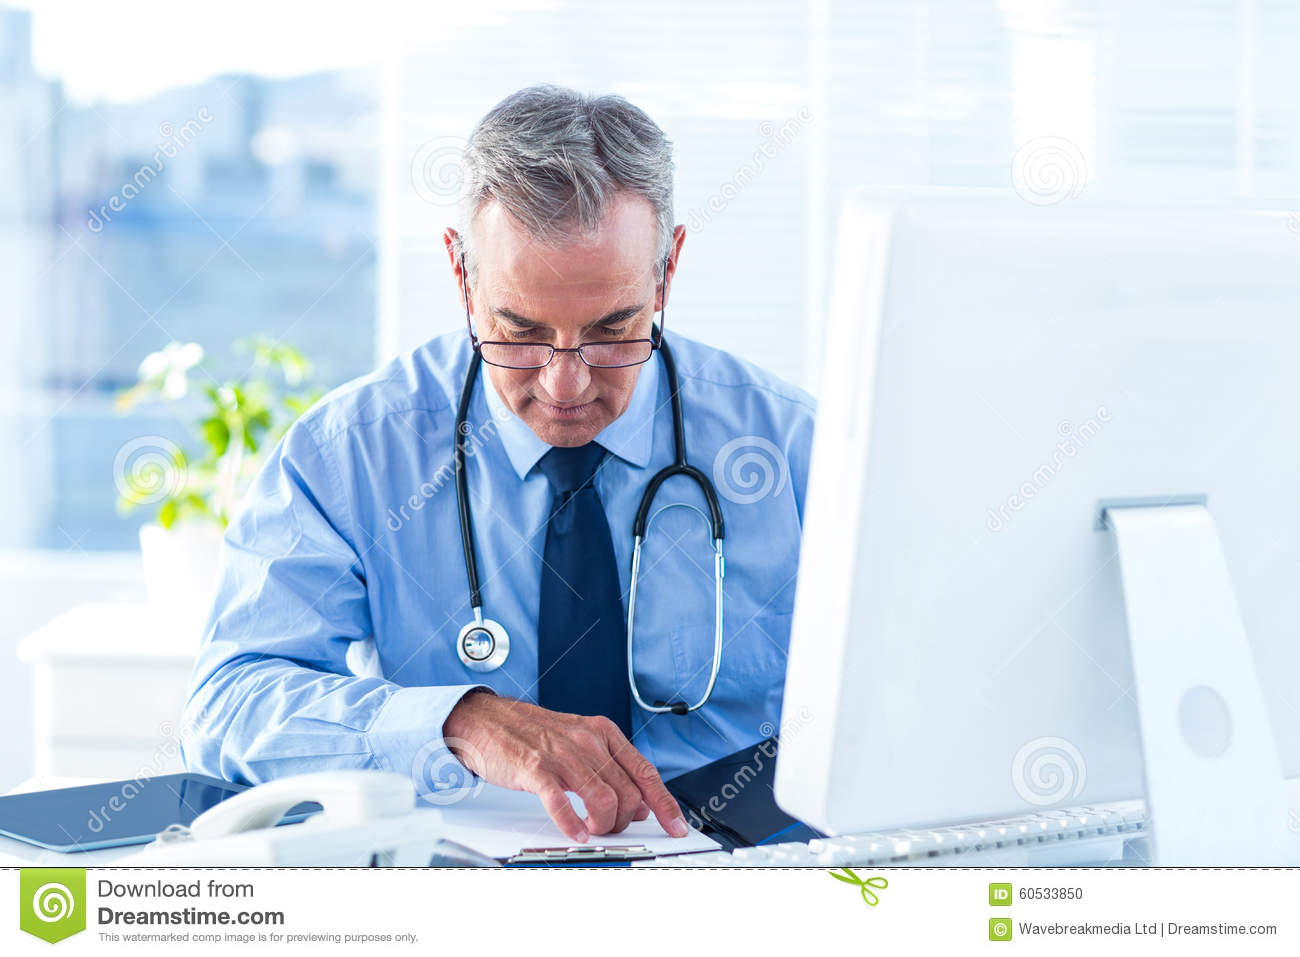 Male doctor examining document in hospital